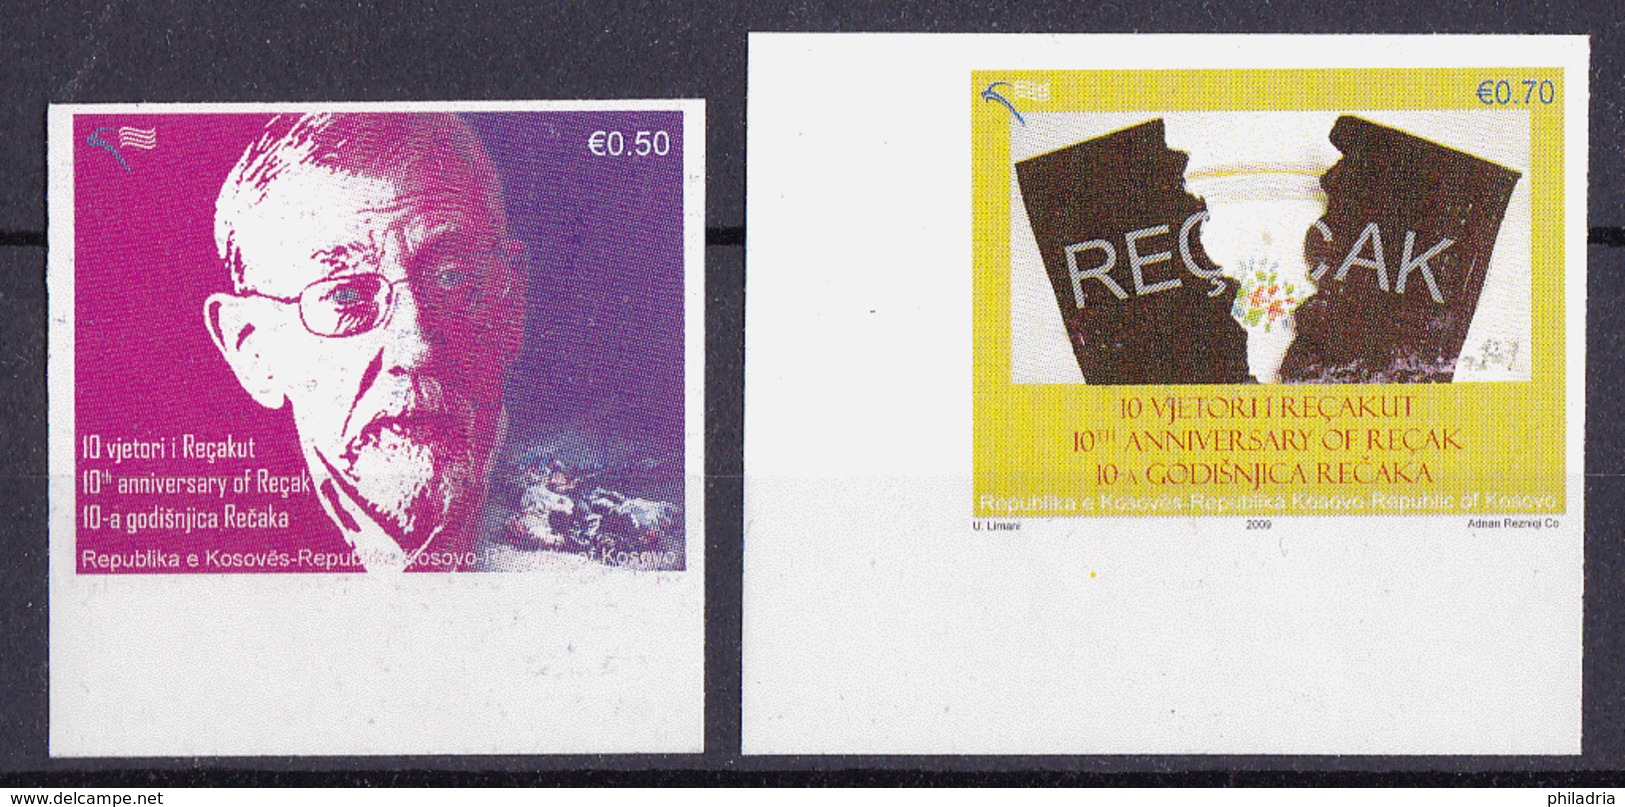 Kosovo, Recak 2009, Complete Set MNH, Imperforated, The Value Of 0,50 € One Print Phase Missing - Kosovo